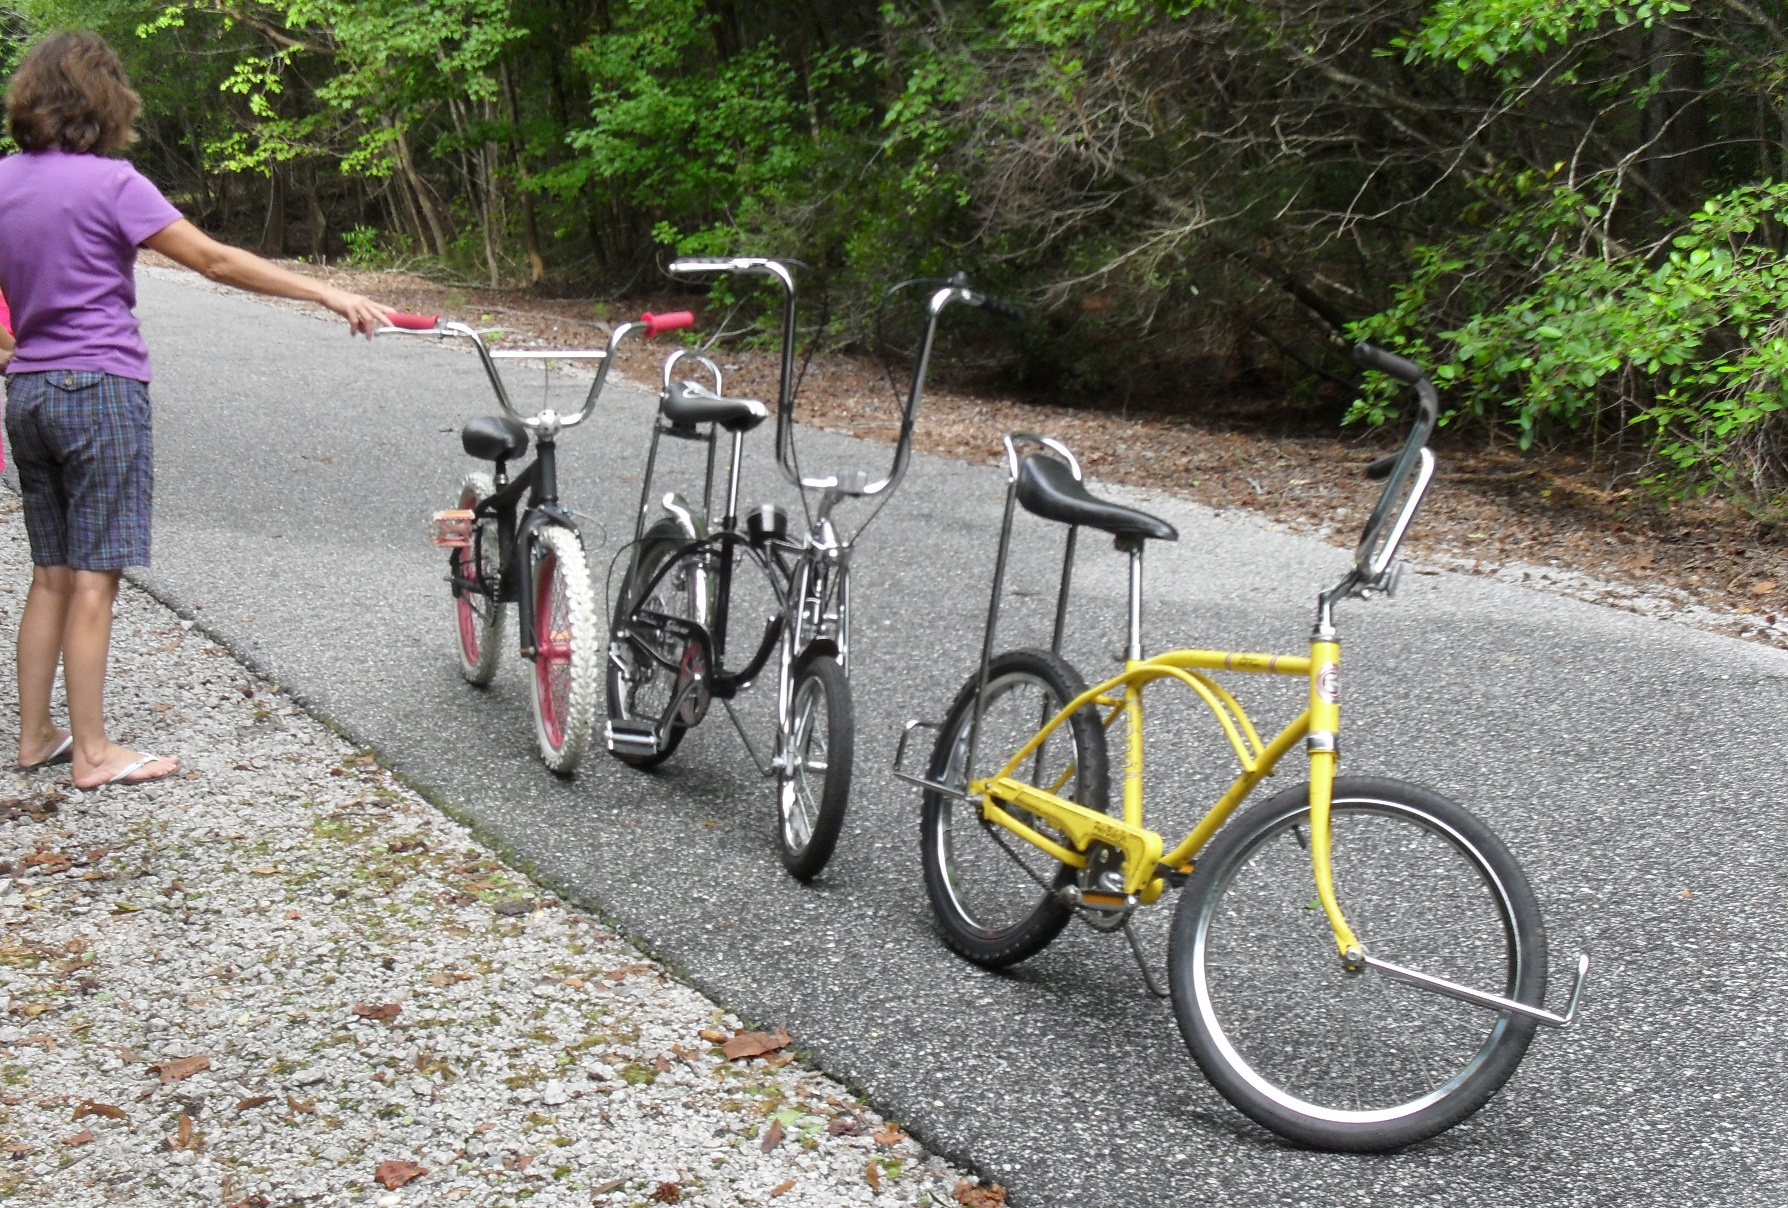 3 Wheeled Motorcycles >> Riding Kiddie Bikes on the Rail Trail in Florence S.C. - Motopsyco's Asylum Crazy about motorcycles!